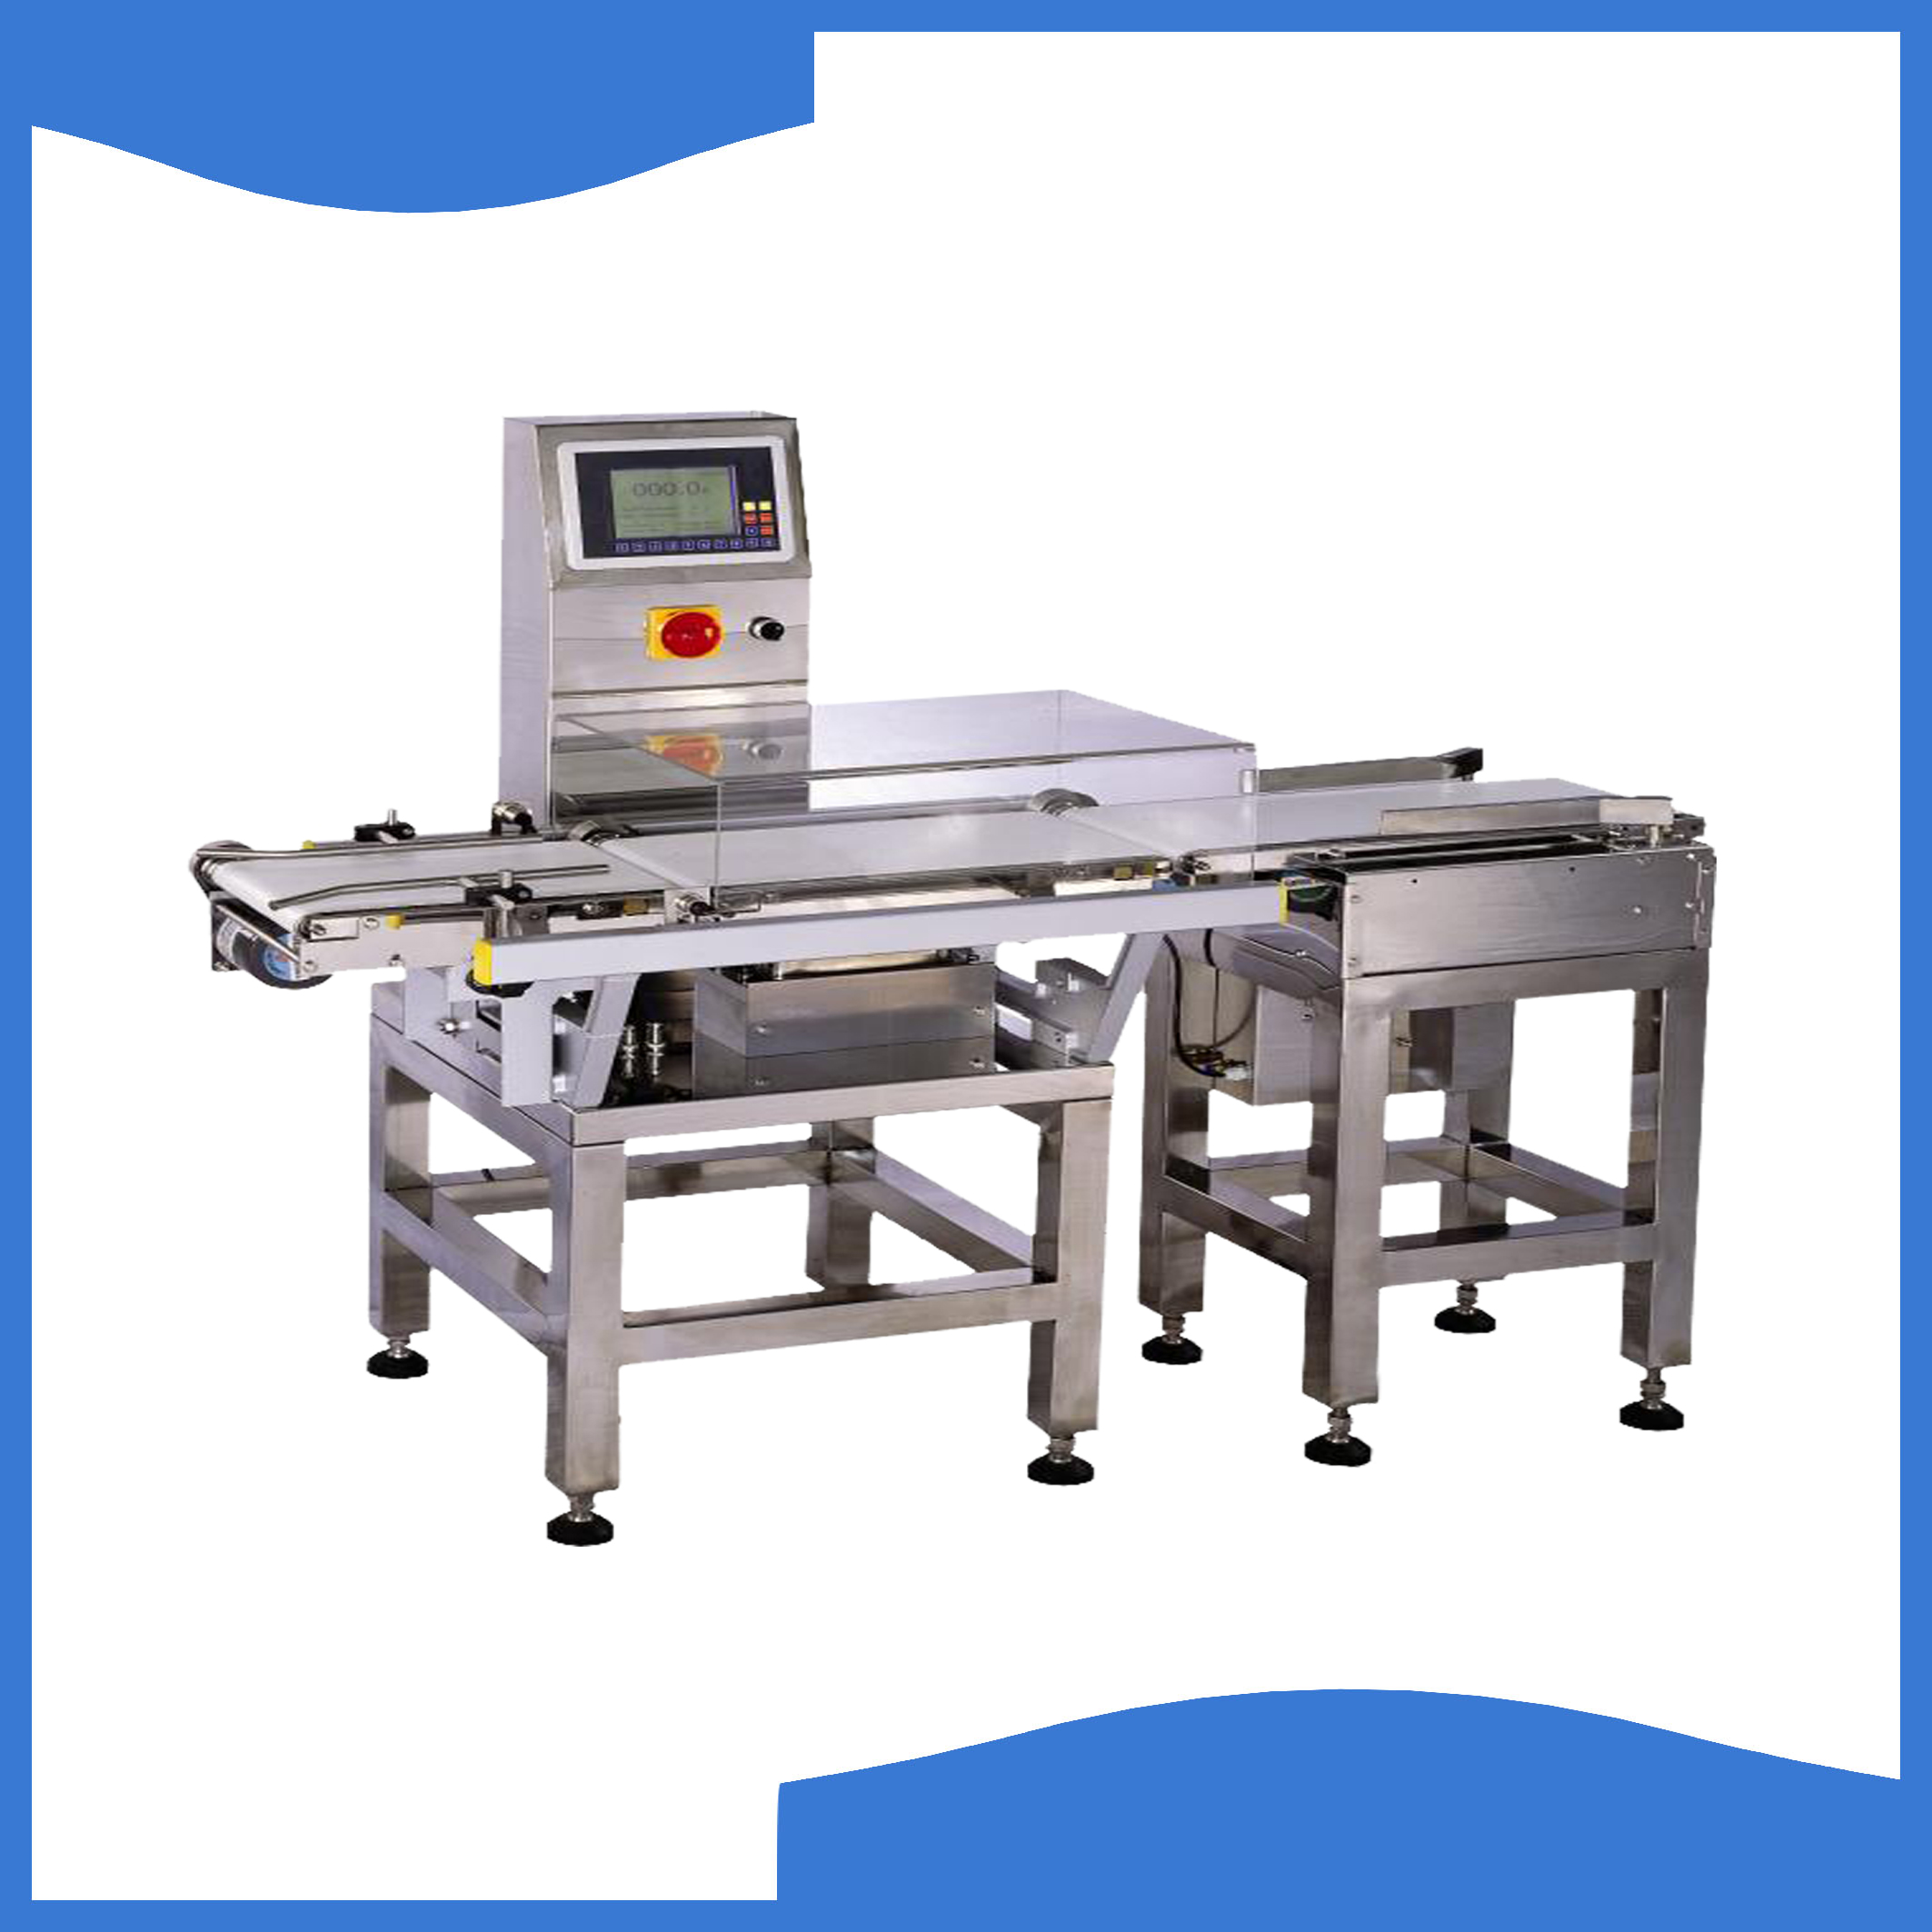 Automatic check weigher with pusher rejector